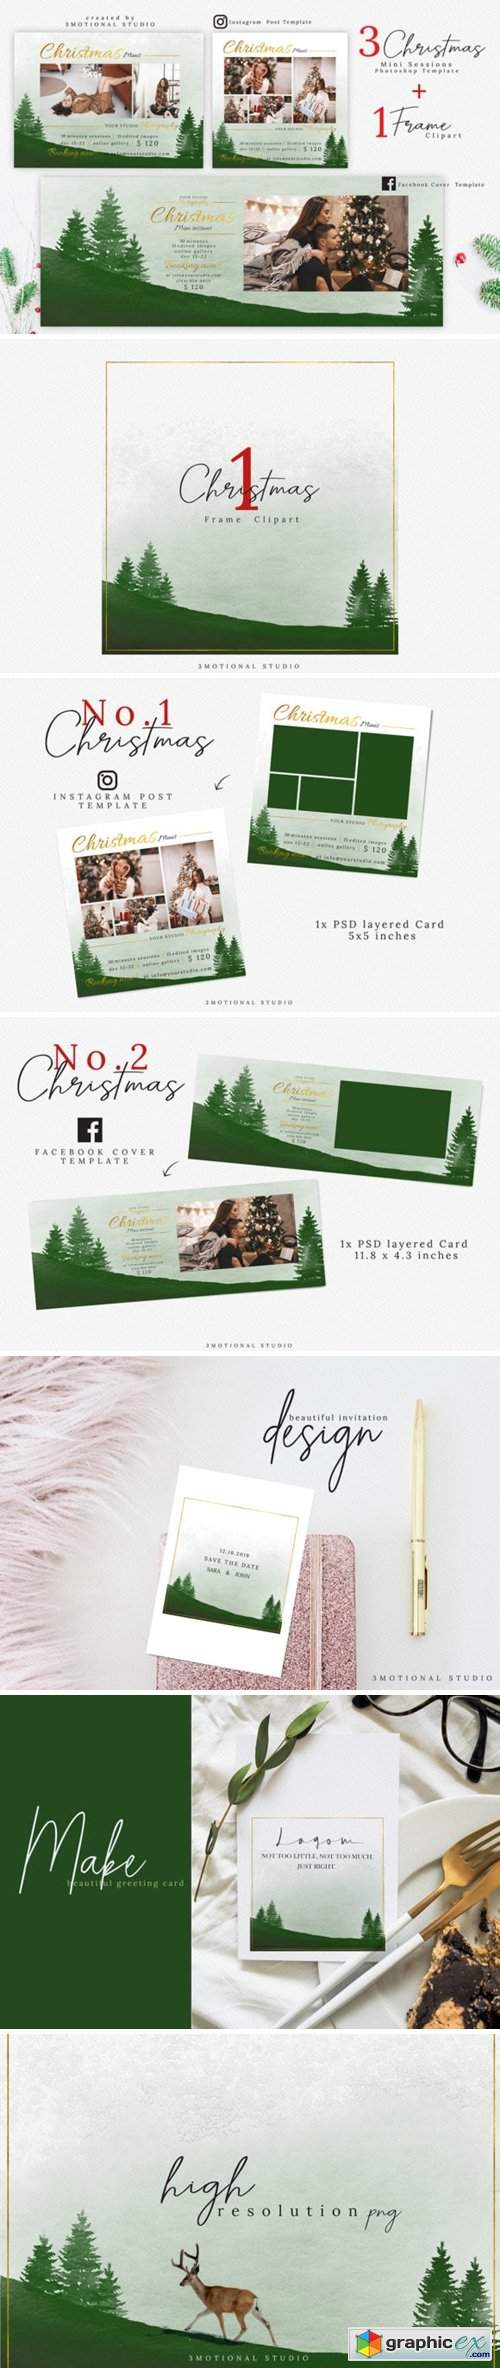 Christmas Mini Session Template 2250710